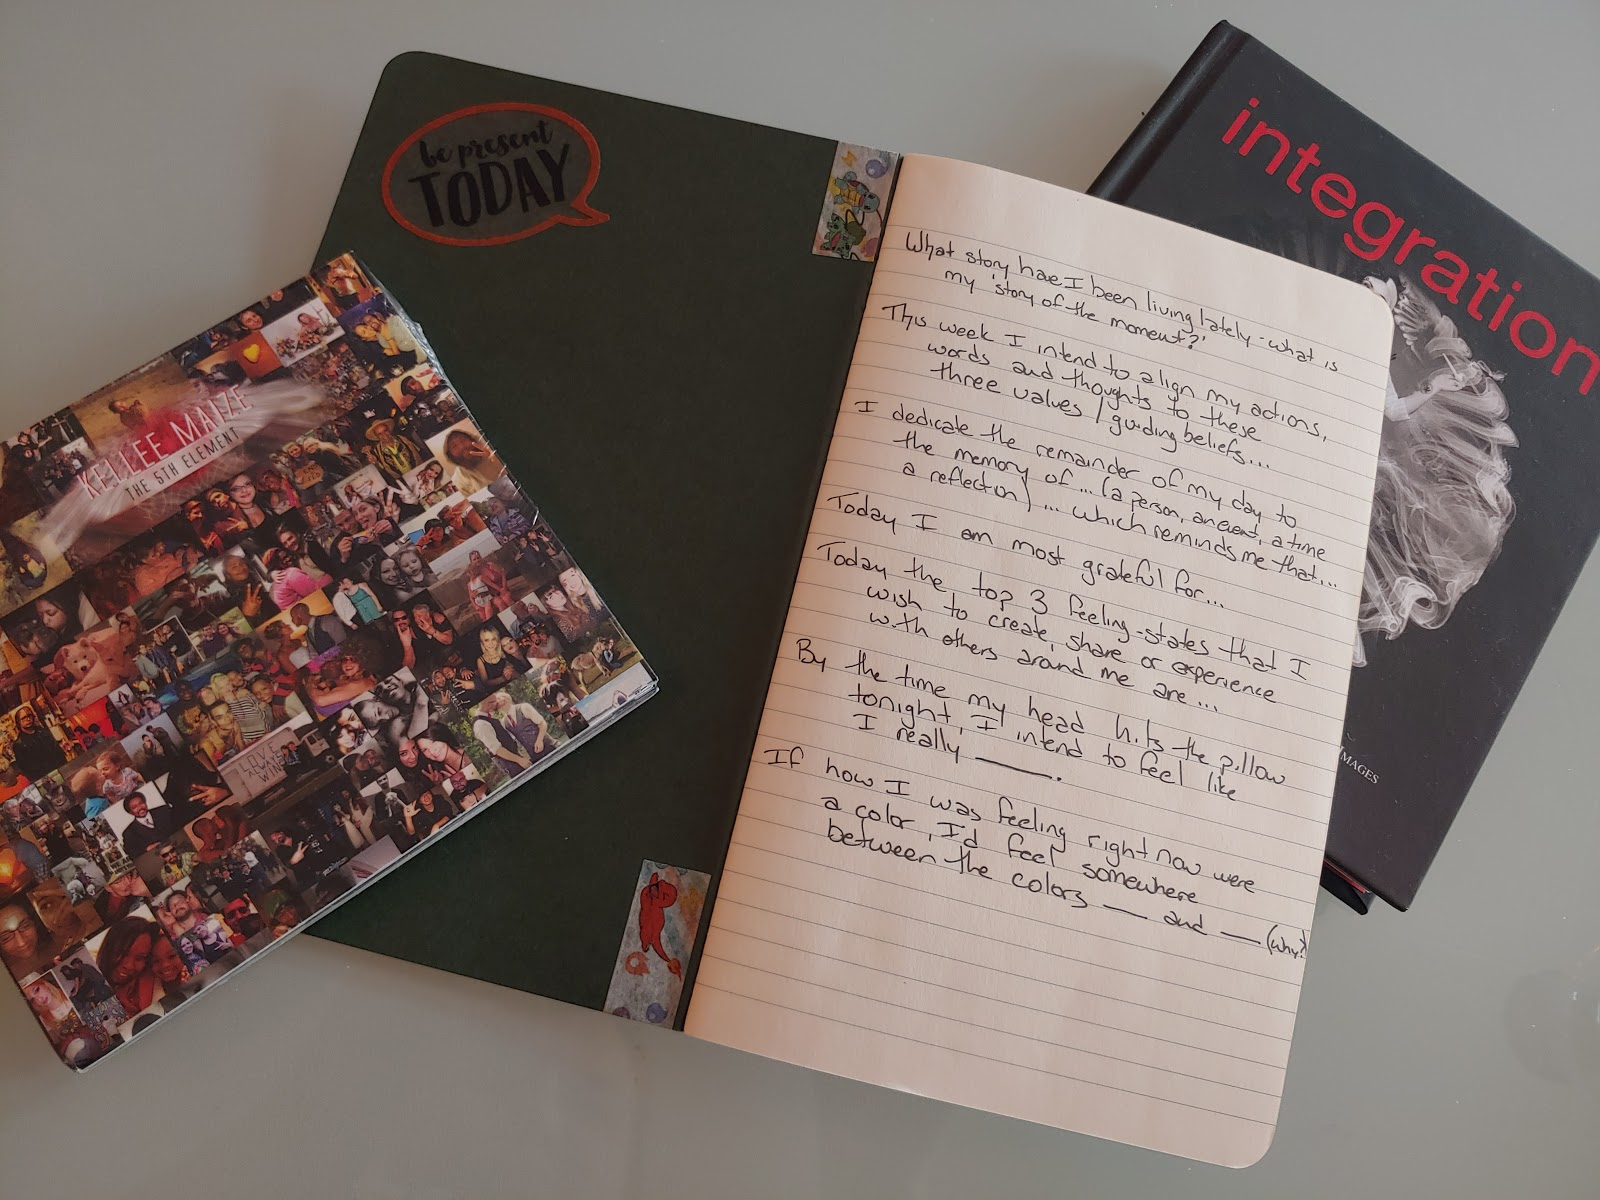 Open Journal with CD and Book showing prompts for journaling written on front page